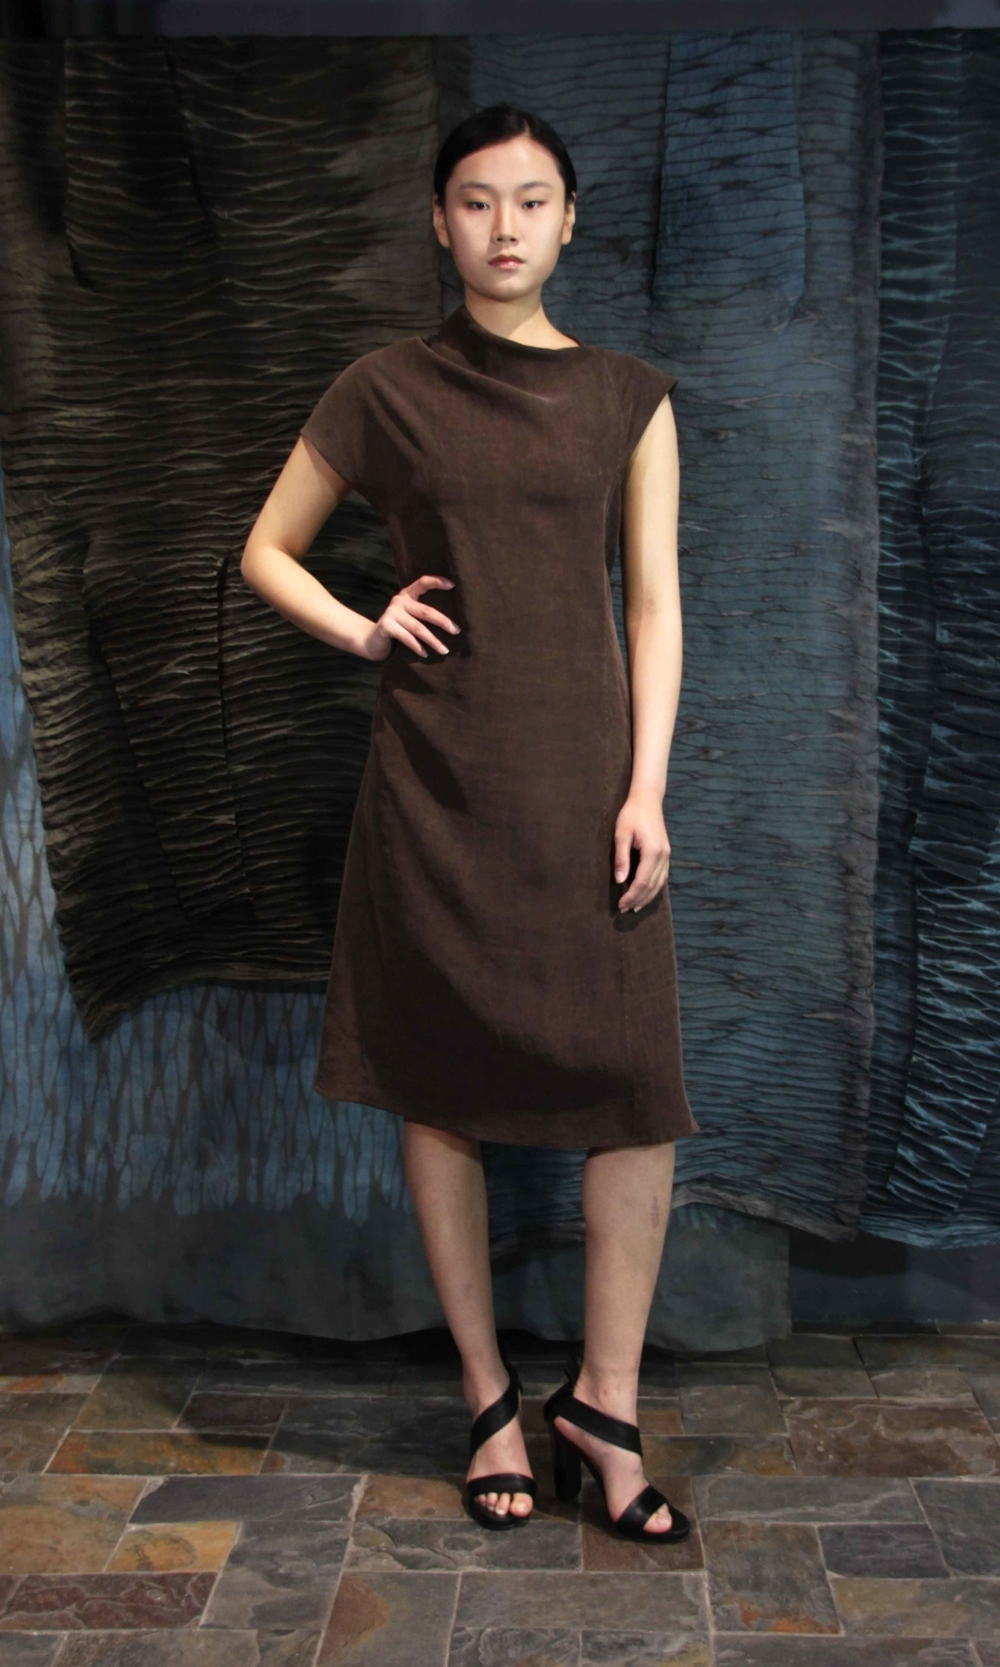 "28-20 Shuliang and iron rust treated tea-silk dress  /   薯莨和铁锈处理手工染色香云纱连衣裙                                                                                                                                                                                                                                                                                                        /* Style Definitions */  table.MsoNormalTable 	{mso-style-name:""Table Normal""; 	mso-tstyle-rowband-size:0; 	mso-tstyle-colband-size:0; 	mso-style-noshow:yes; 	mso-style-priority:99; 	mso-style-qformat:yes; 	mso-style-parent:""""; 	mso-padding-alt:0in 5.4pt 0in 5.4pt; 	mso-para-margin-top:0in; 	mso-para-margin-right:0in; 	mso-para-margin-bottom:10.0pt; 	mso-para-margin-left:0in; 	line-height:115%; 	mso-pagination:widow-orphan; 	font-size:11.0pt; 	font-family:""Calibri"",""sans-serif""; 	mso-ascii-font-family:Calibri; 	mso-ascii-theme-font:minor-latin; 	mso-hansi-font-family:Calibri; 	mso-hansi-theme-font:minor-latin; 	mso-bidi-font-family:""Times New Roman""; 	mso-bidi-theme-font:minor-bidi;}"